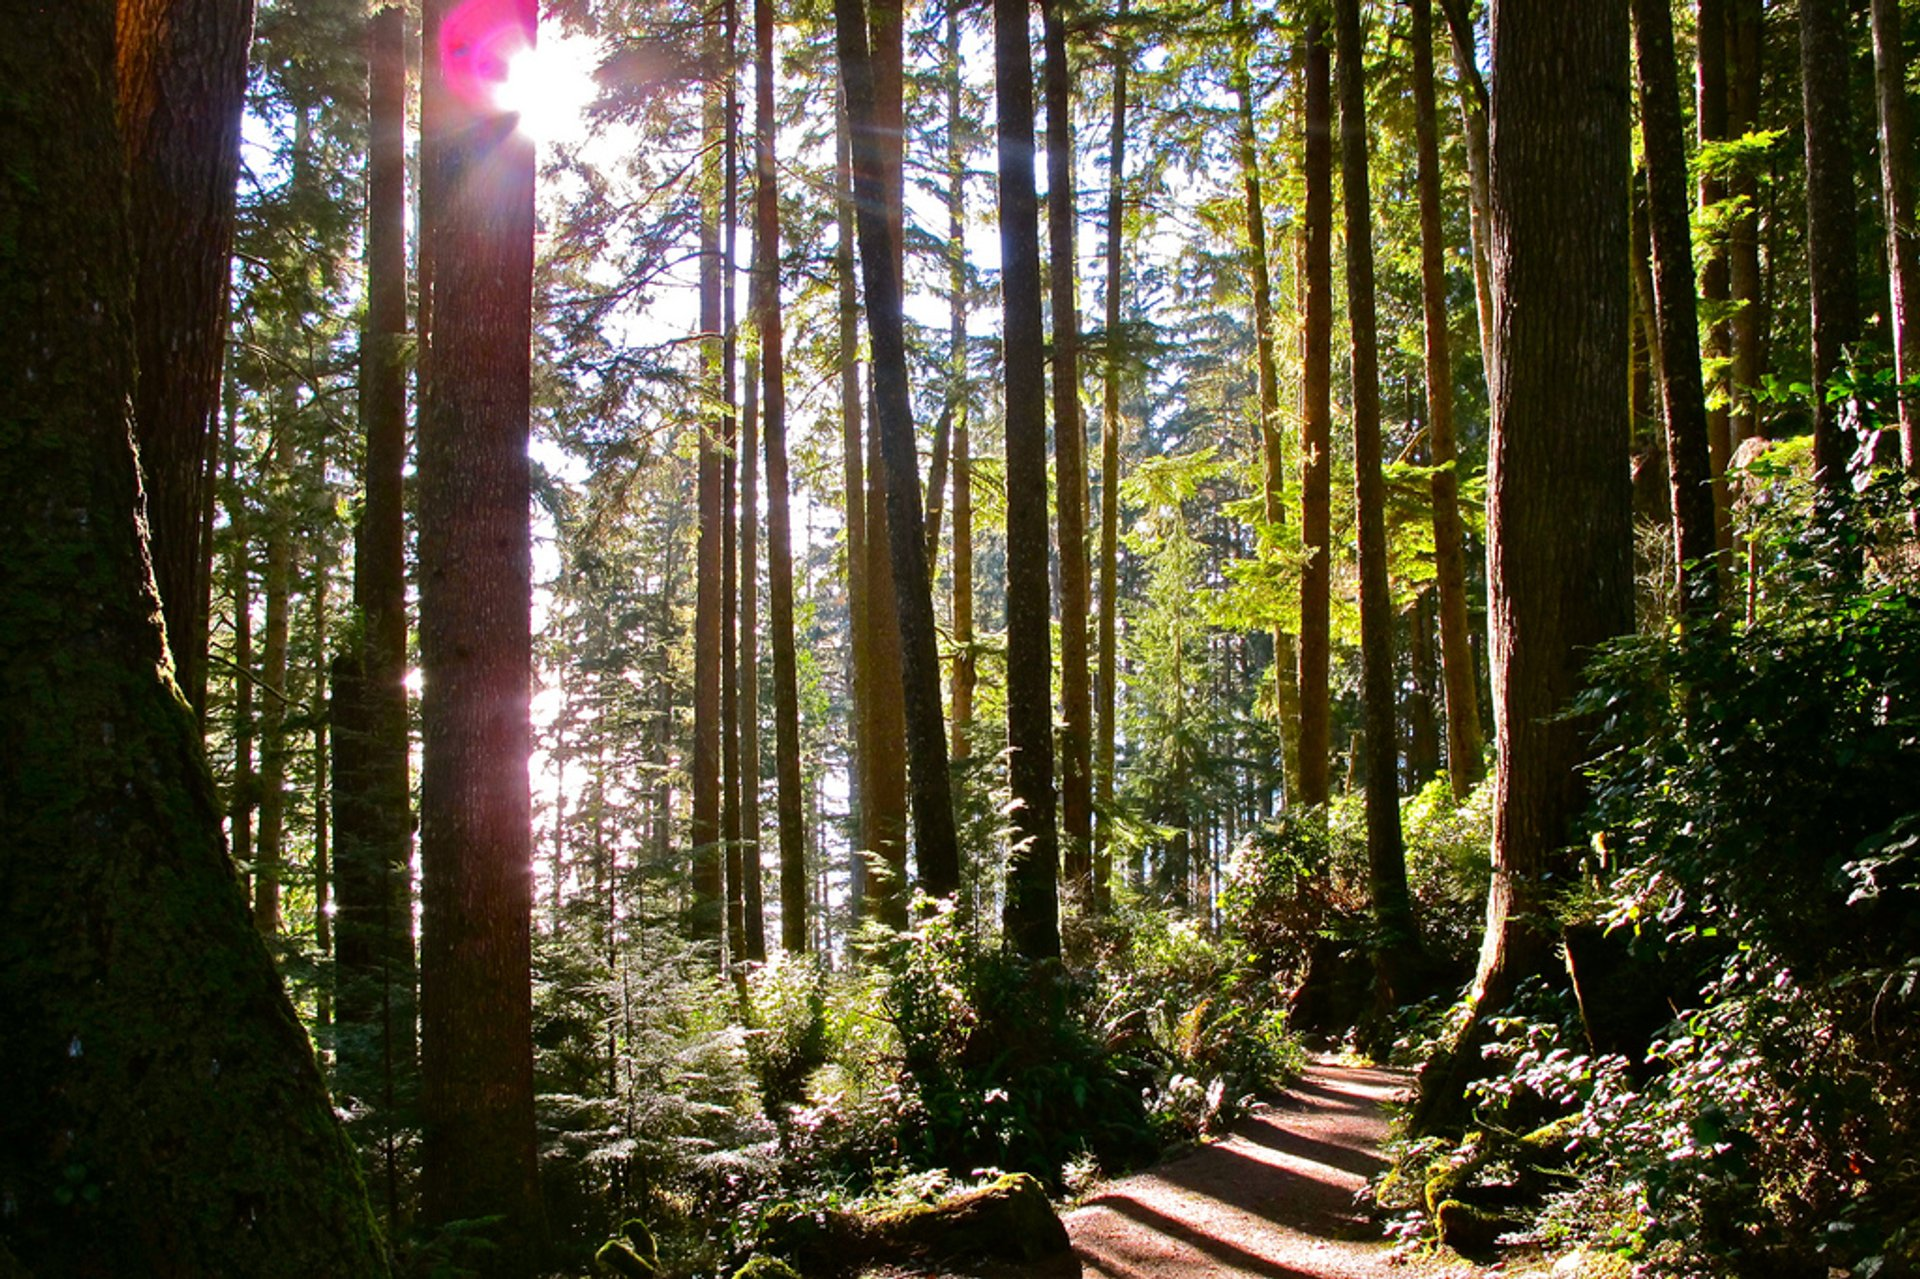 Forest along the Juan de Fuca trail near China Beach, Vancouver Island